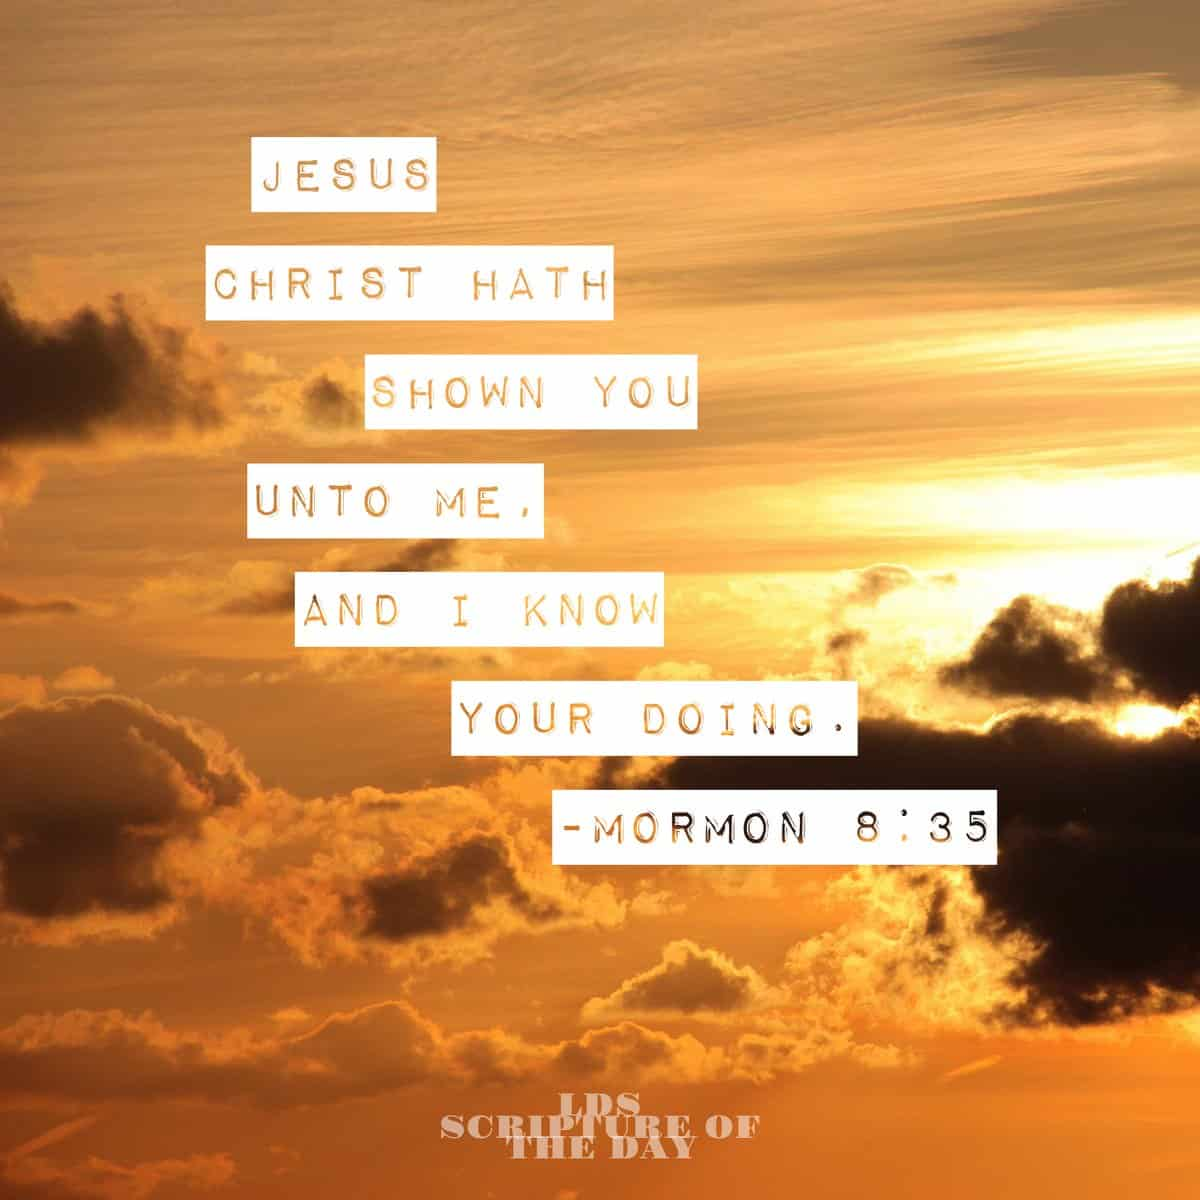 Jesus Christ hath shown you unto me, and I know your doing. Mormon 8:35